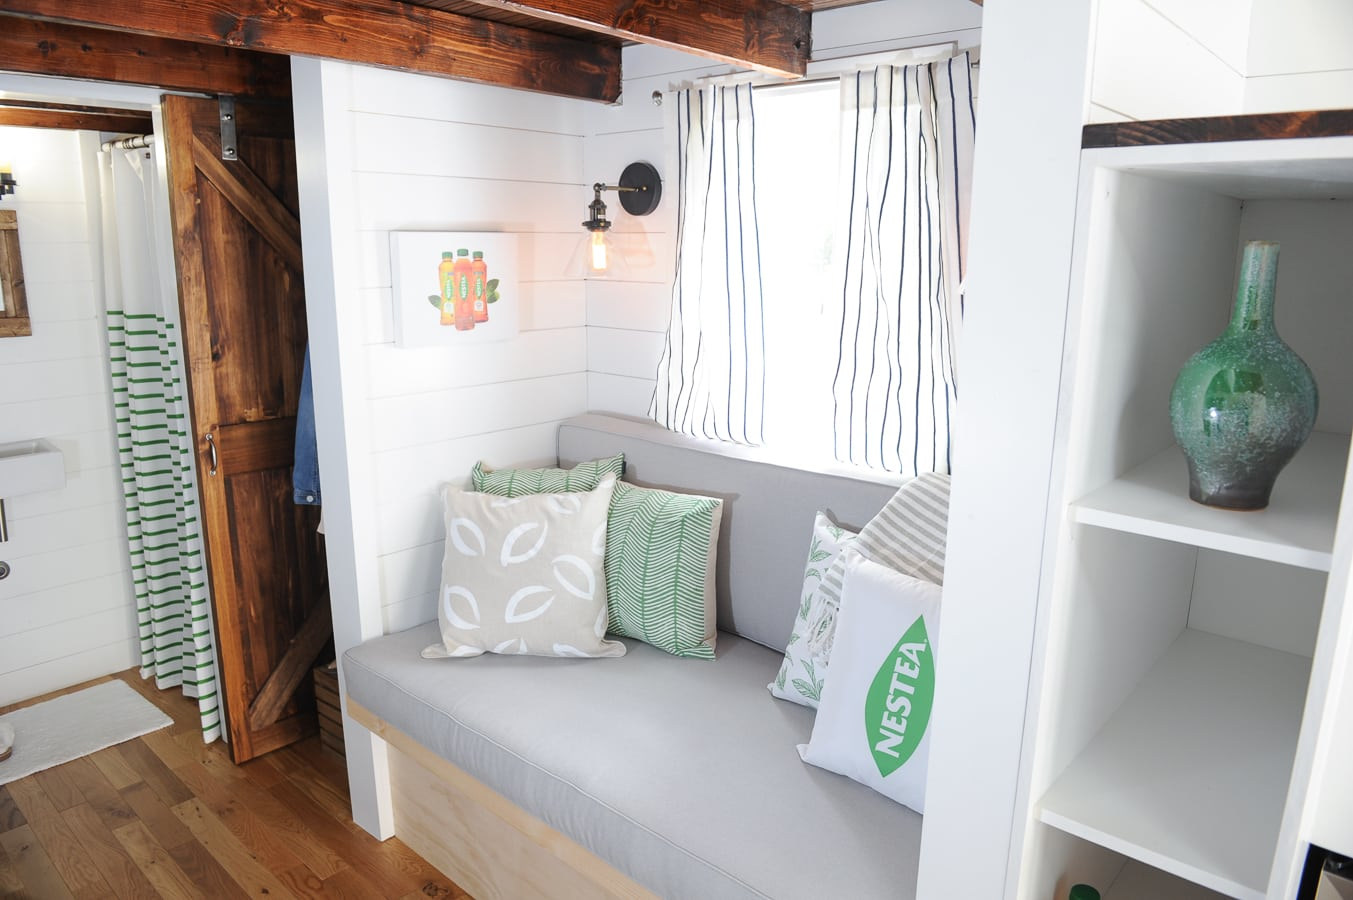 Decorating A Tiny House In NYC With NESTEA | Inspired By Charm